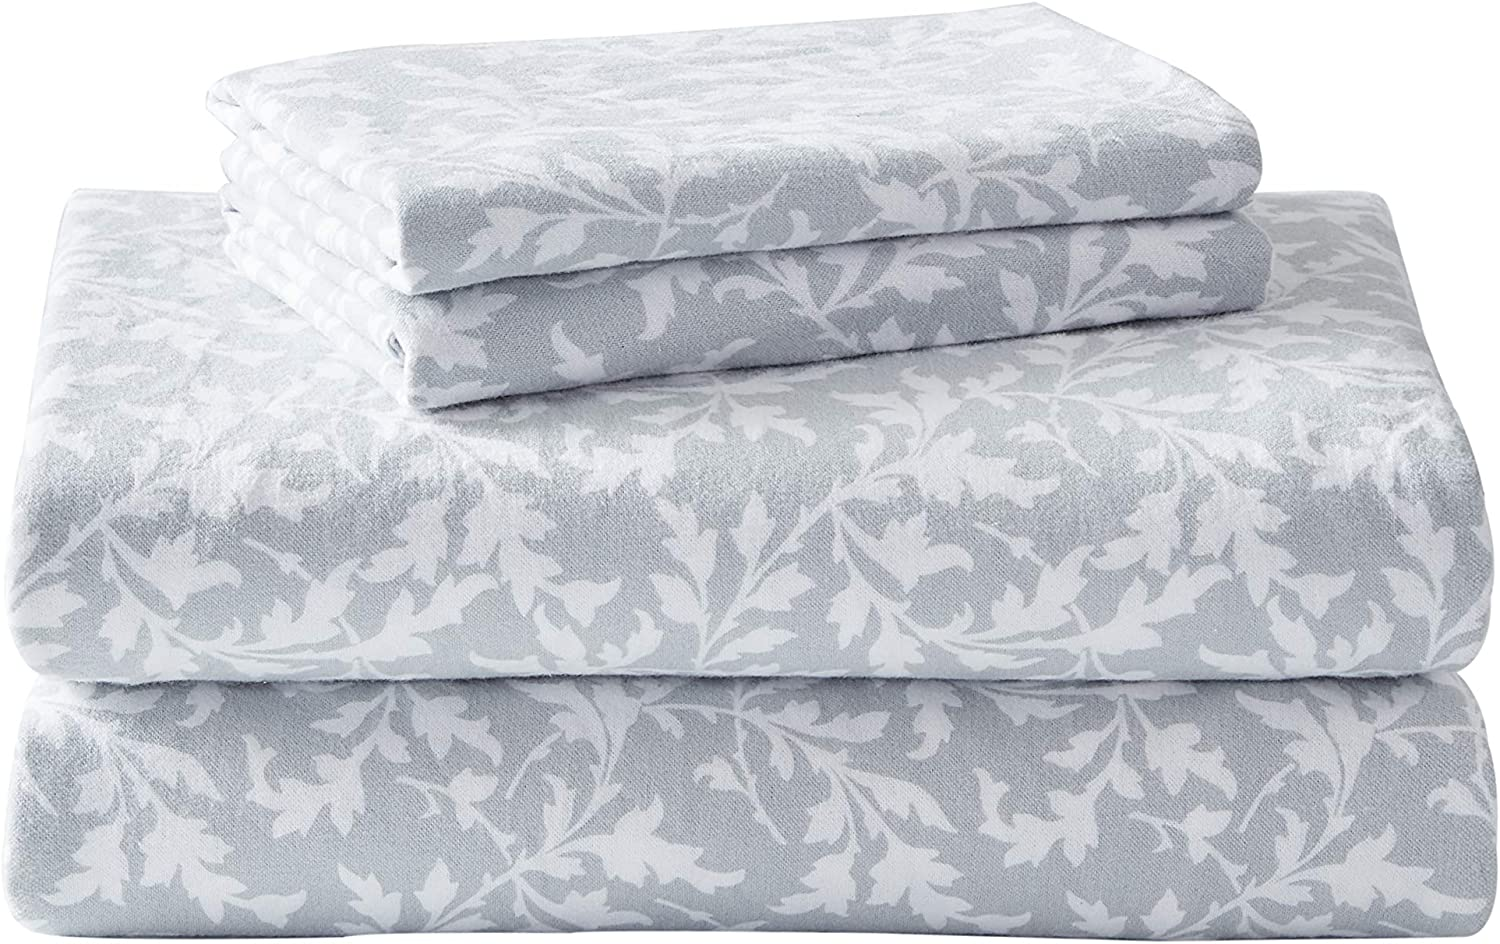 Laura Ashley Home Flannel Collection Set-100% New arrival Ultr Cotton Sheet Now free shipping